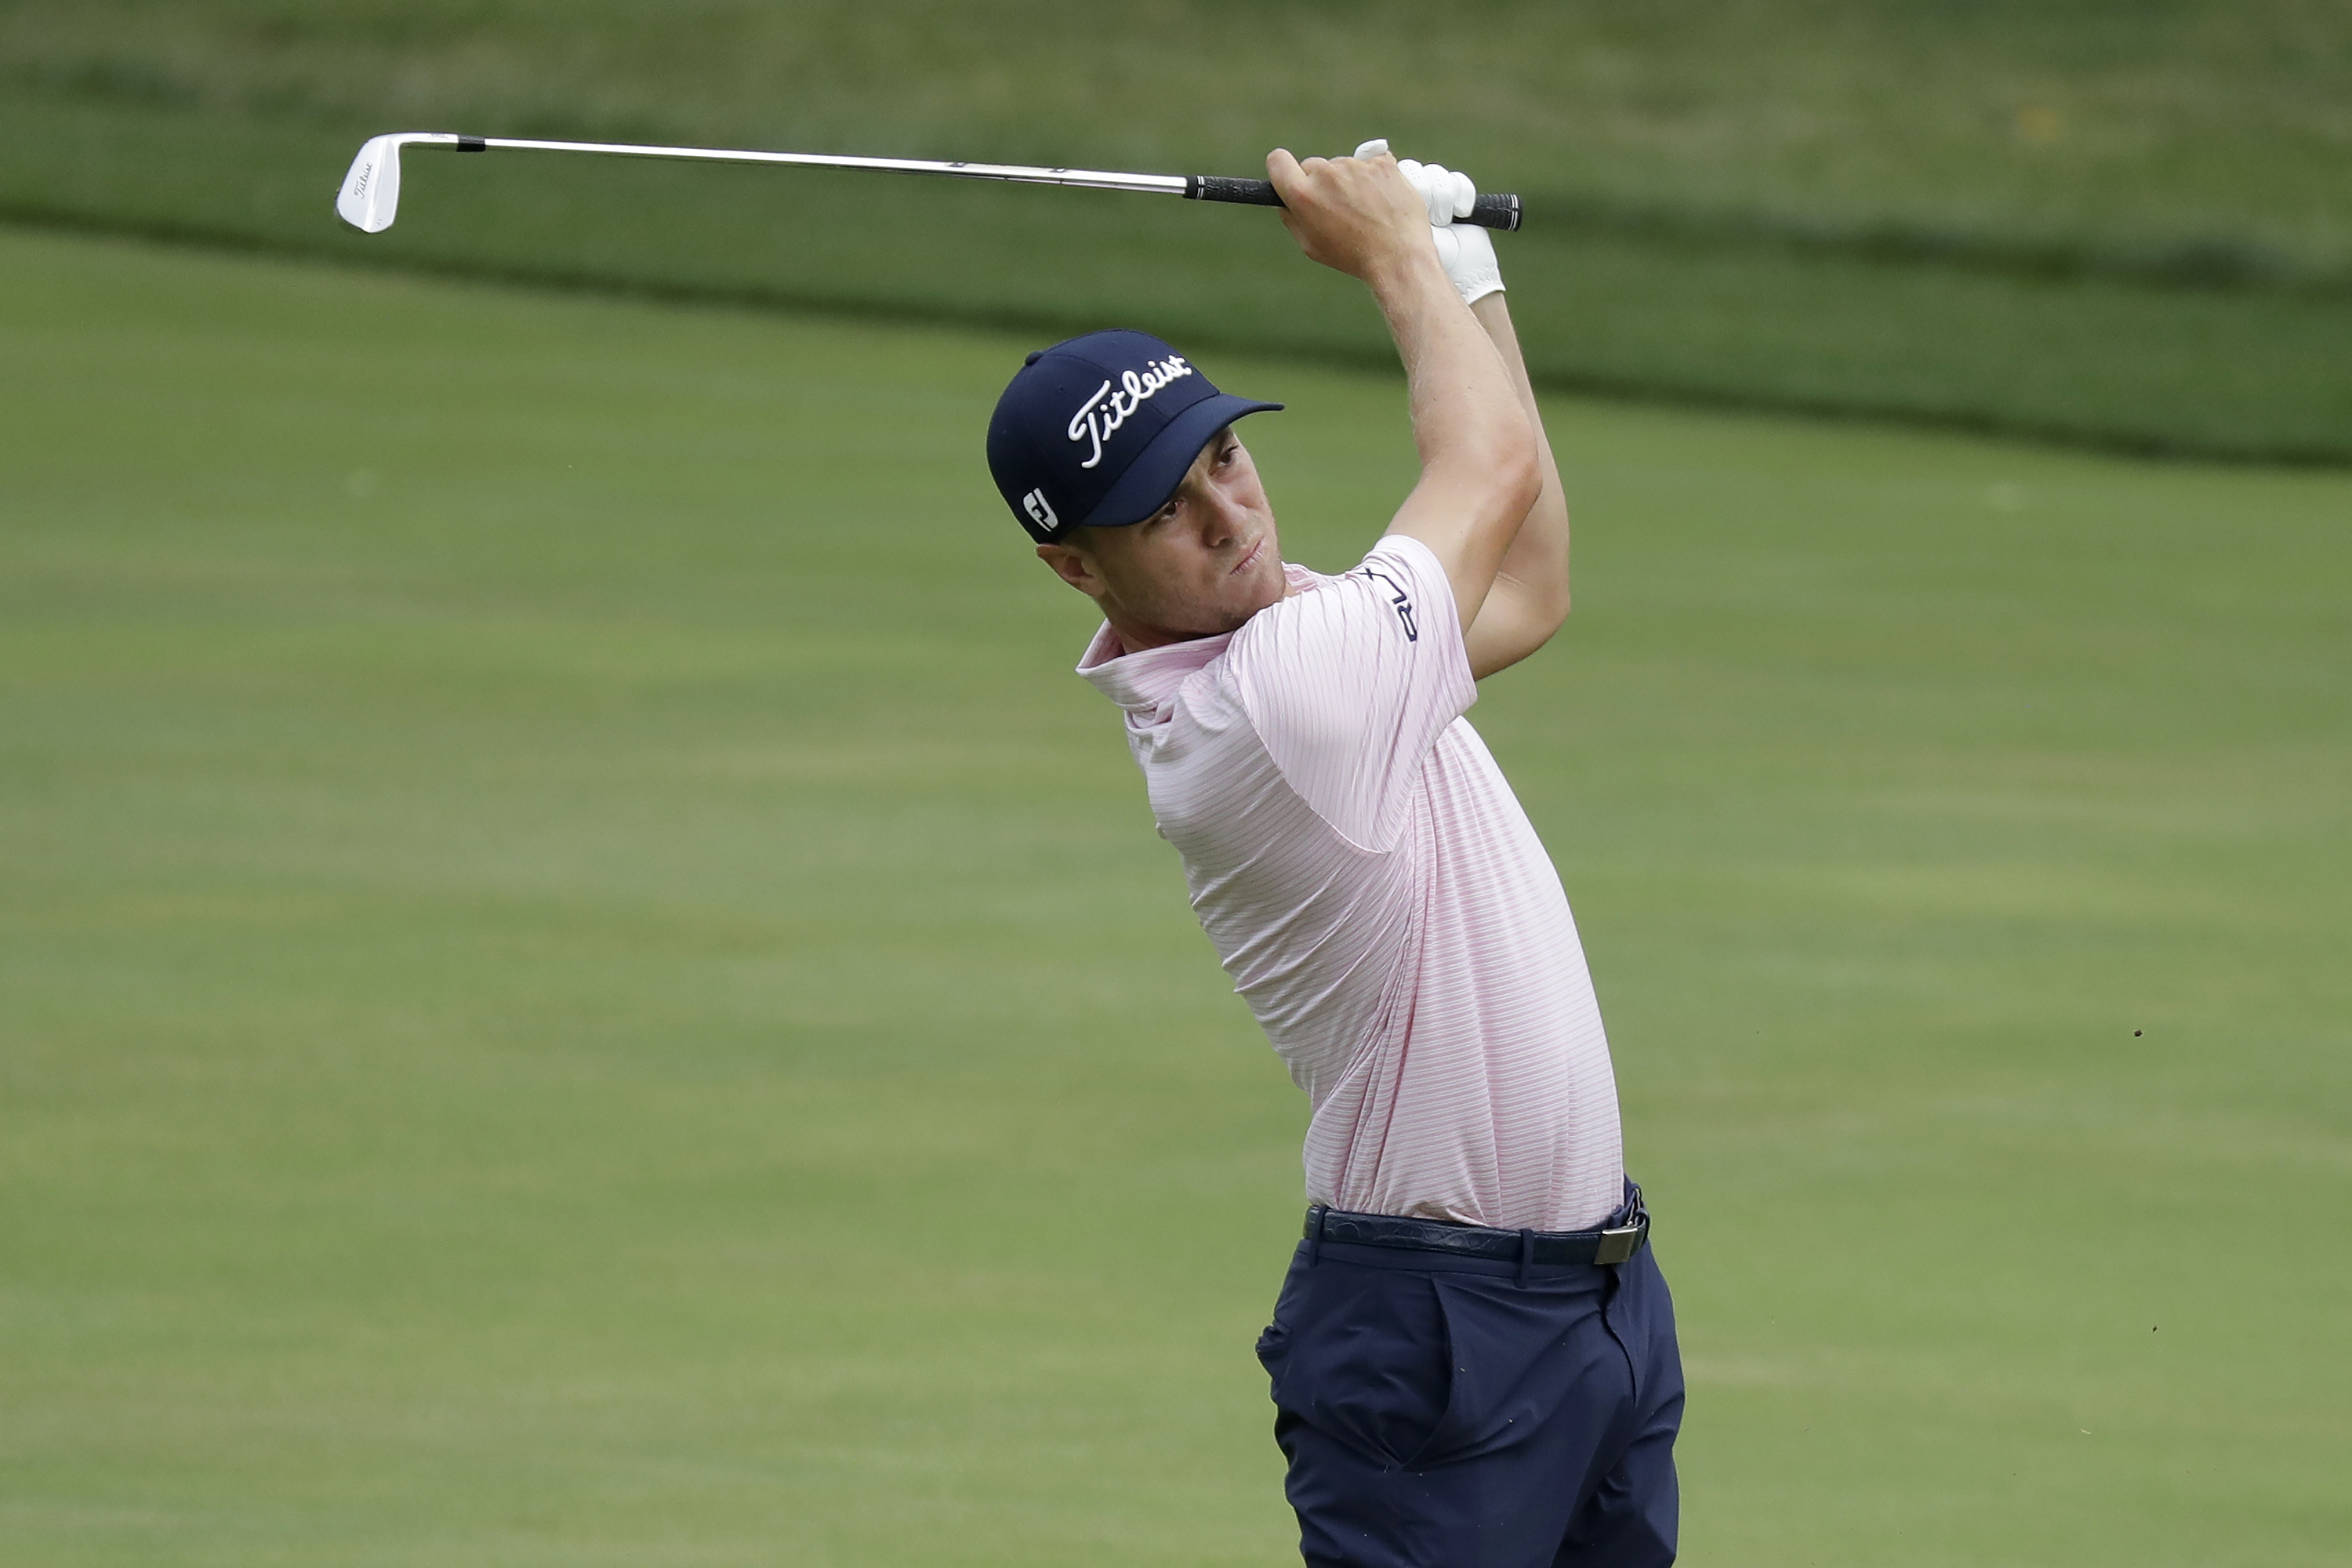 Us pga golf betting odds live sports betting rules to live by